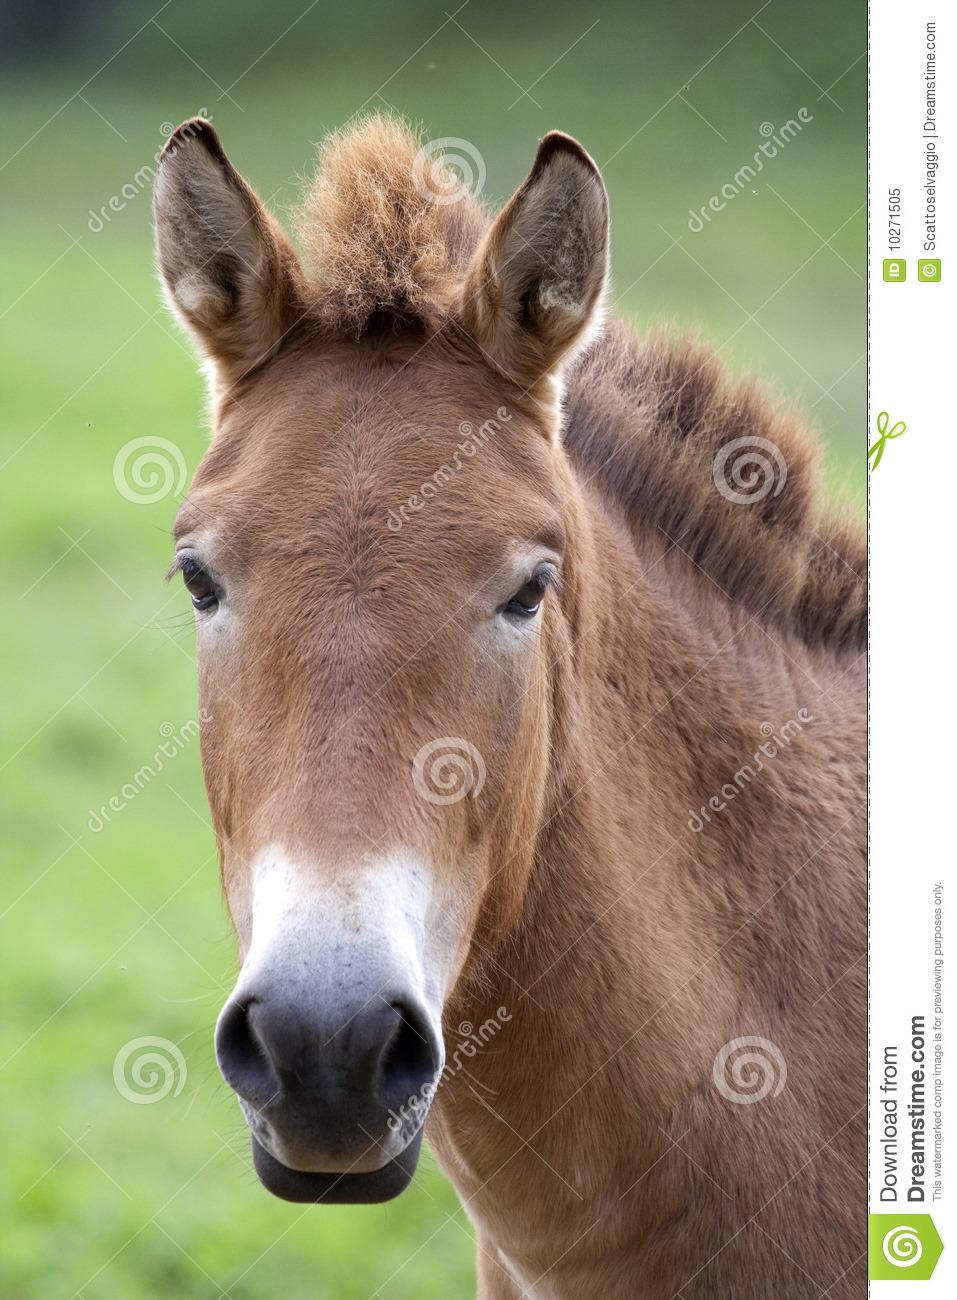 Przewalski s Horse (Equus ferus przewalskii). Przewalski's (or Dzungarian) horse is a rare and endangered subspecies of wild horse native to the steppes of central Asia. At one time extinct in the wild, it has been reintroduced to its native habitat in Mongolia. Most wild horses today, such as the American Mustang or the Australian Brumby, are actually feral horses descended from domesticated animals that escaped and adapted to life in the wild. In contrast, Przewalski's Horse has never been successfully domesticated and remains a truly wild animal today. The horse is named after the Russian geographer and explorer Nikolai Przhevalsky.